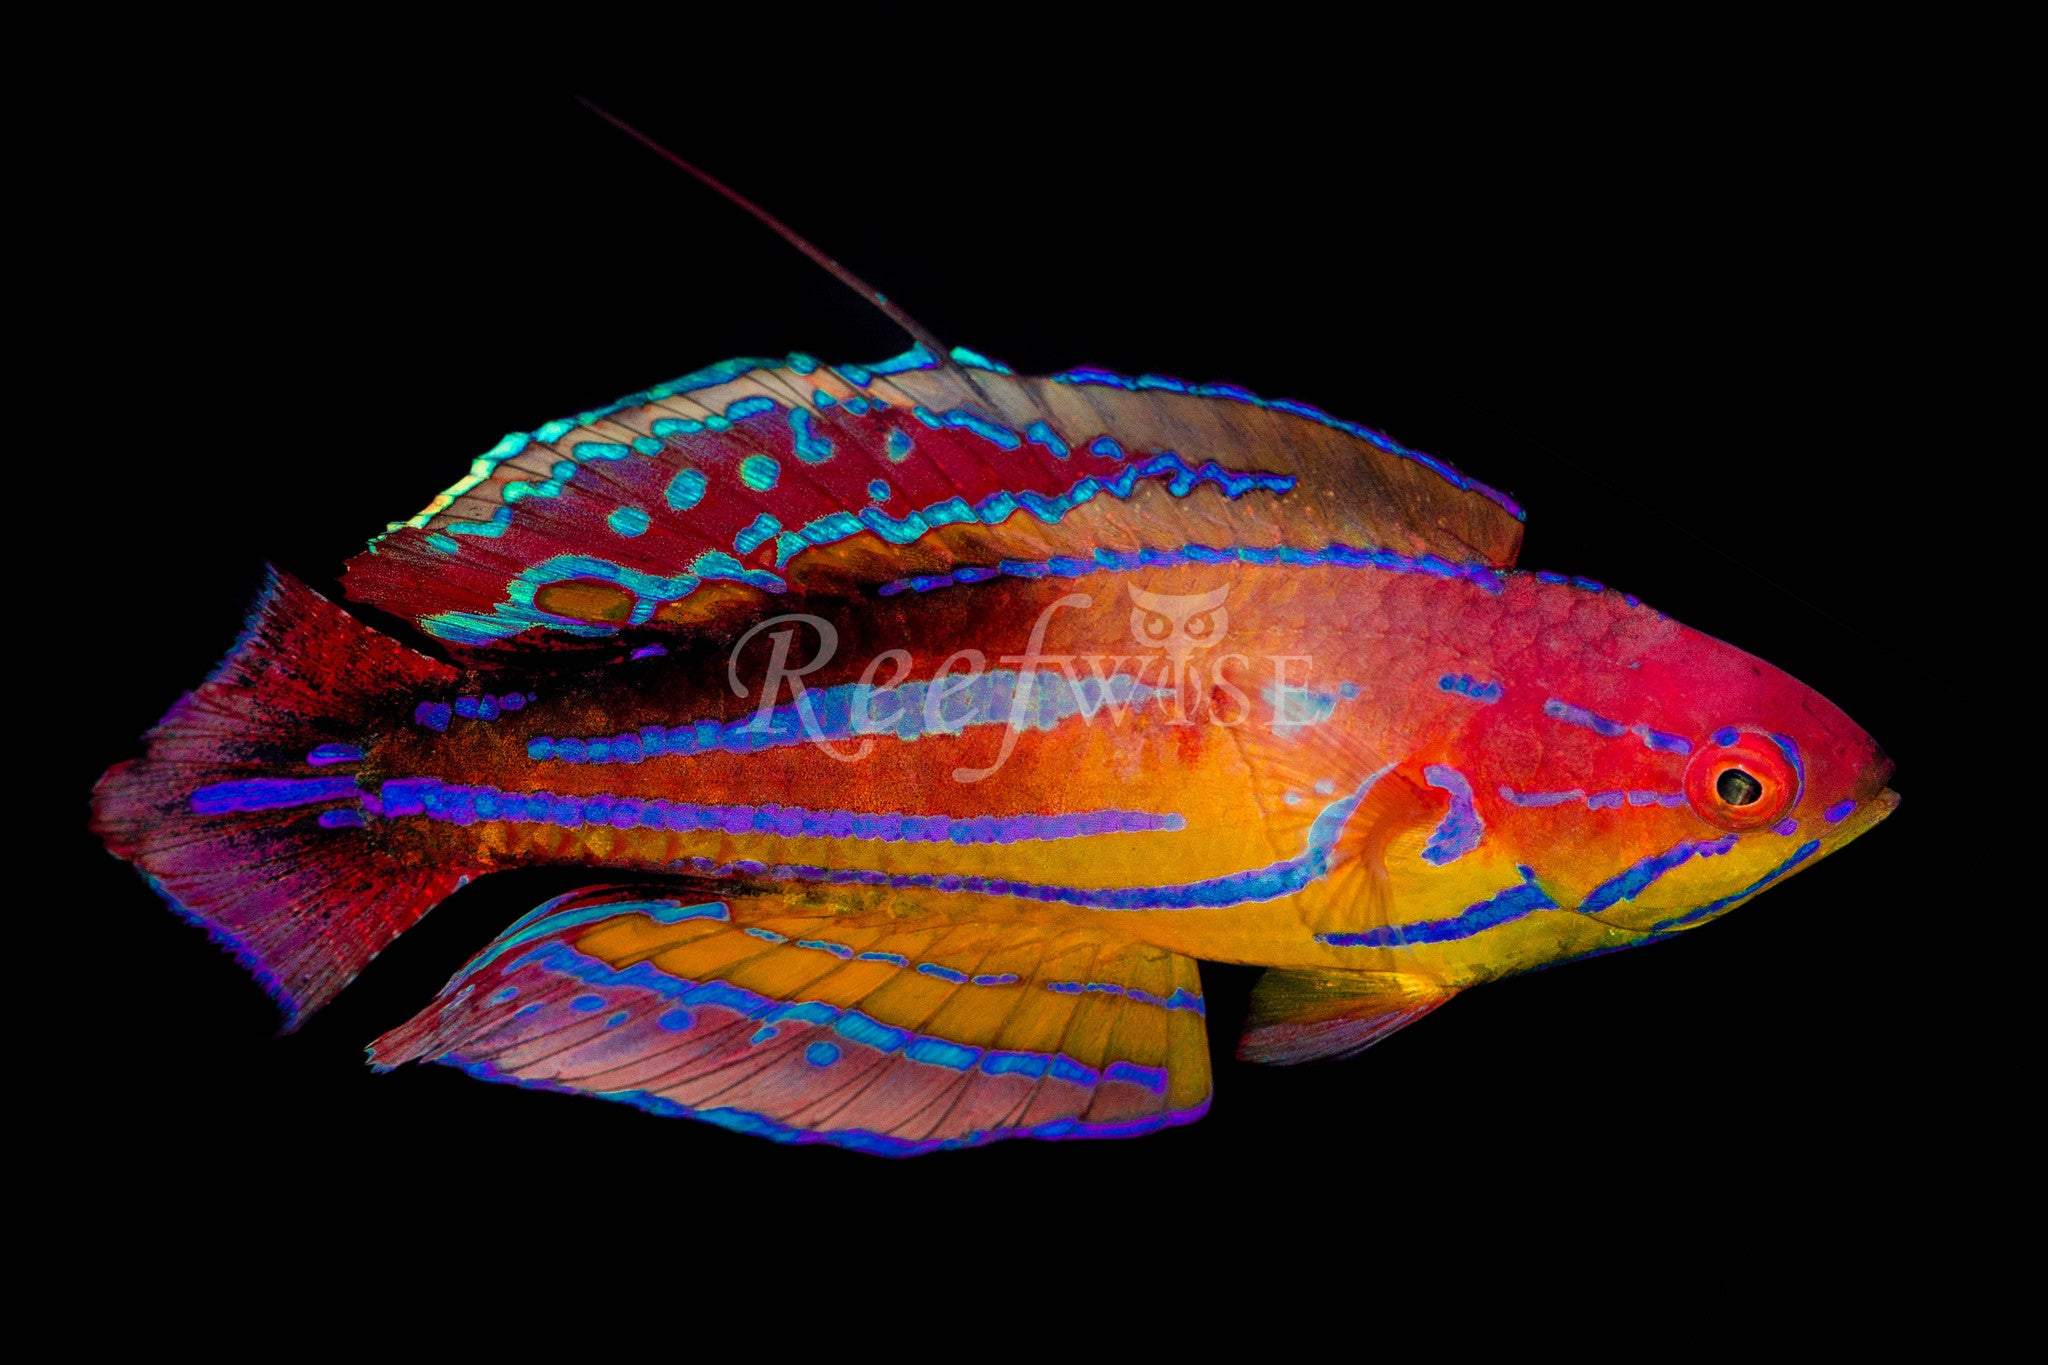 Diamond Tail Flasher Wrasse - Reefwise